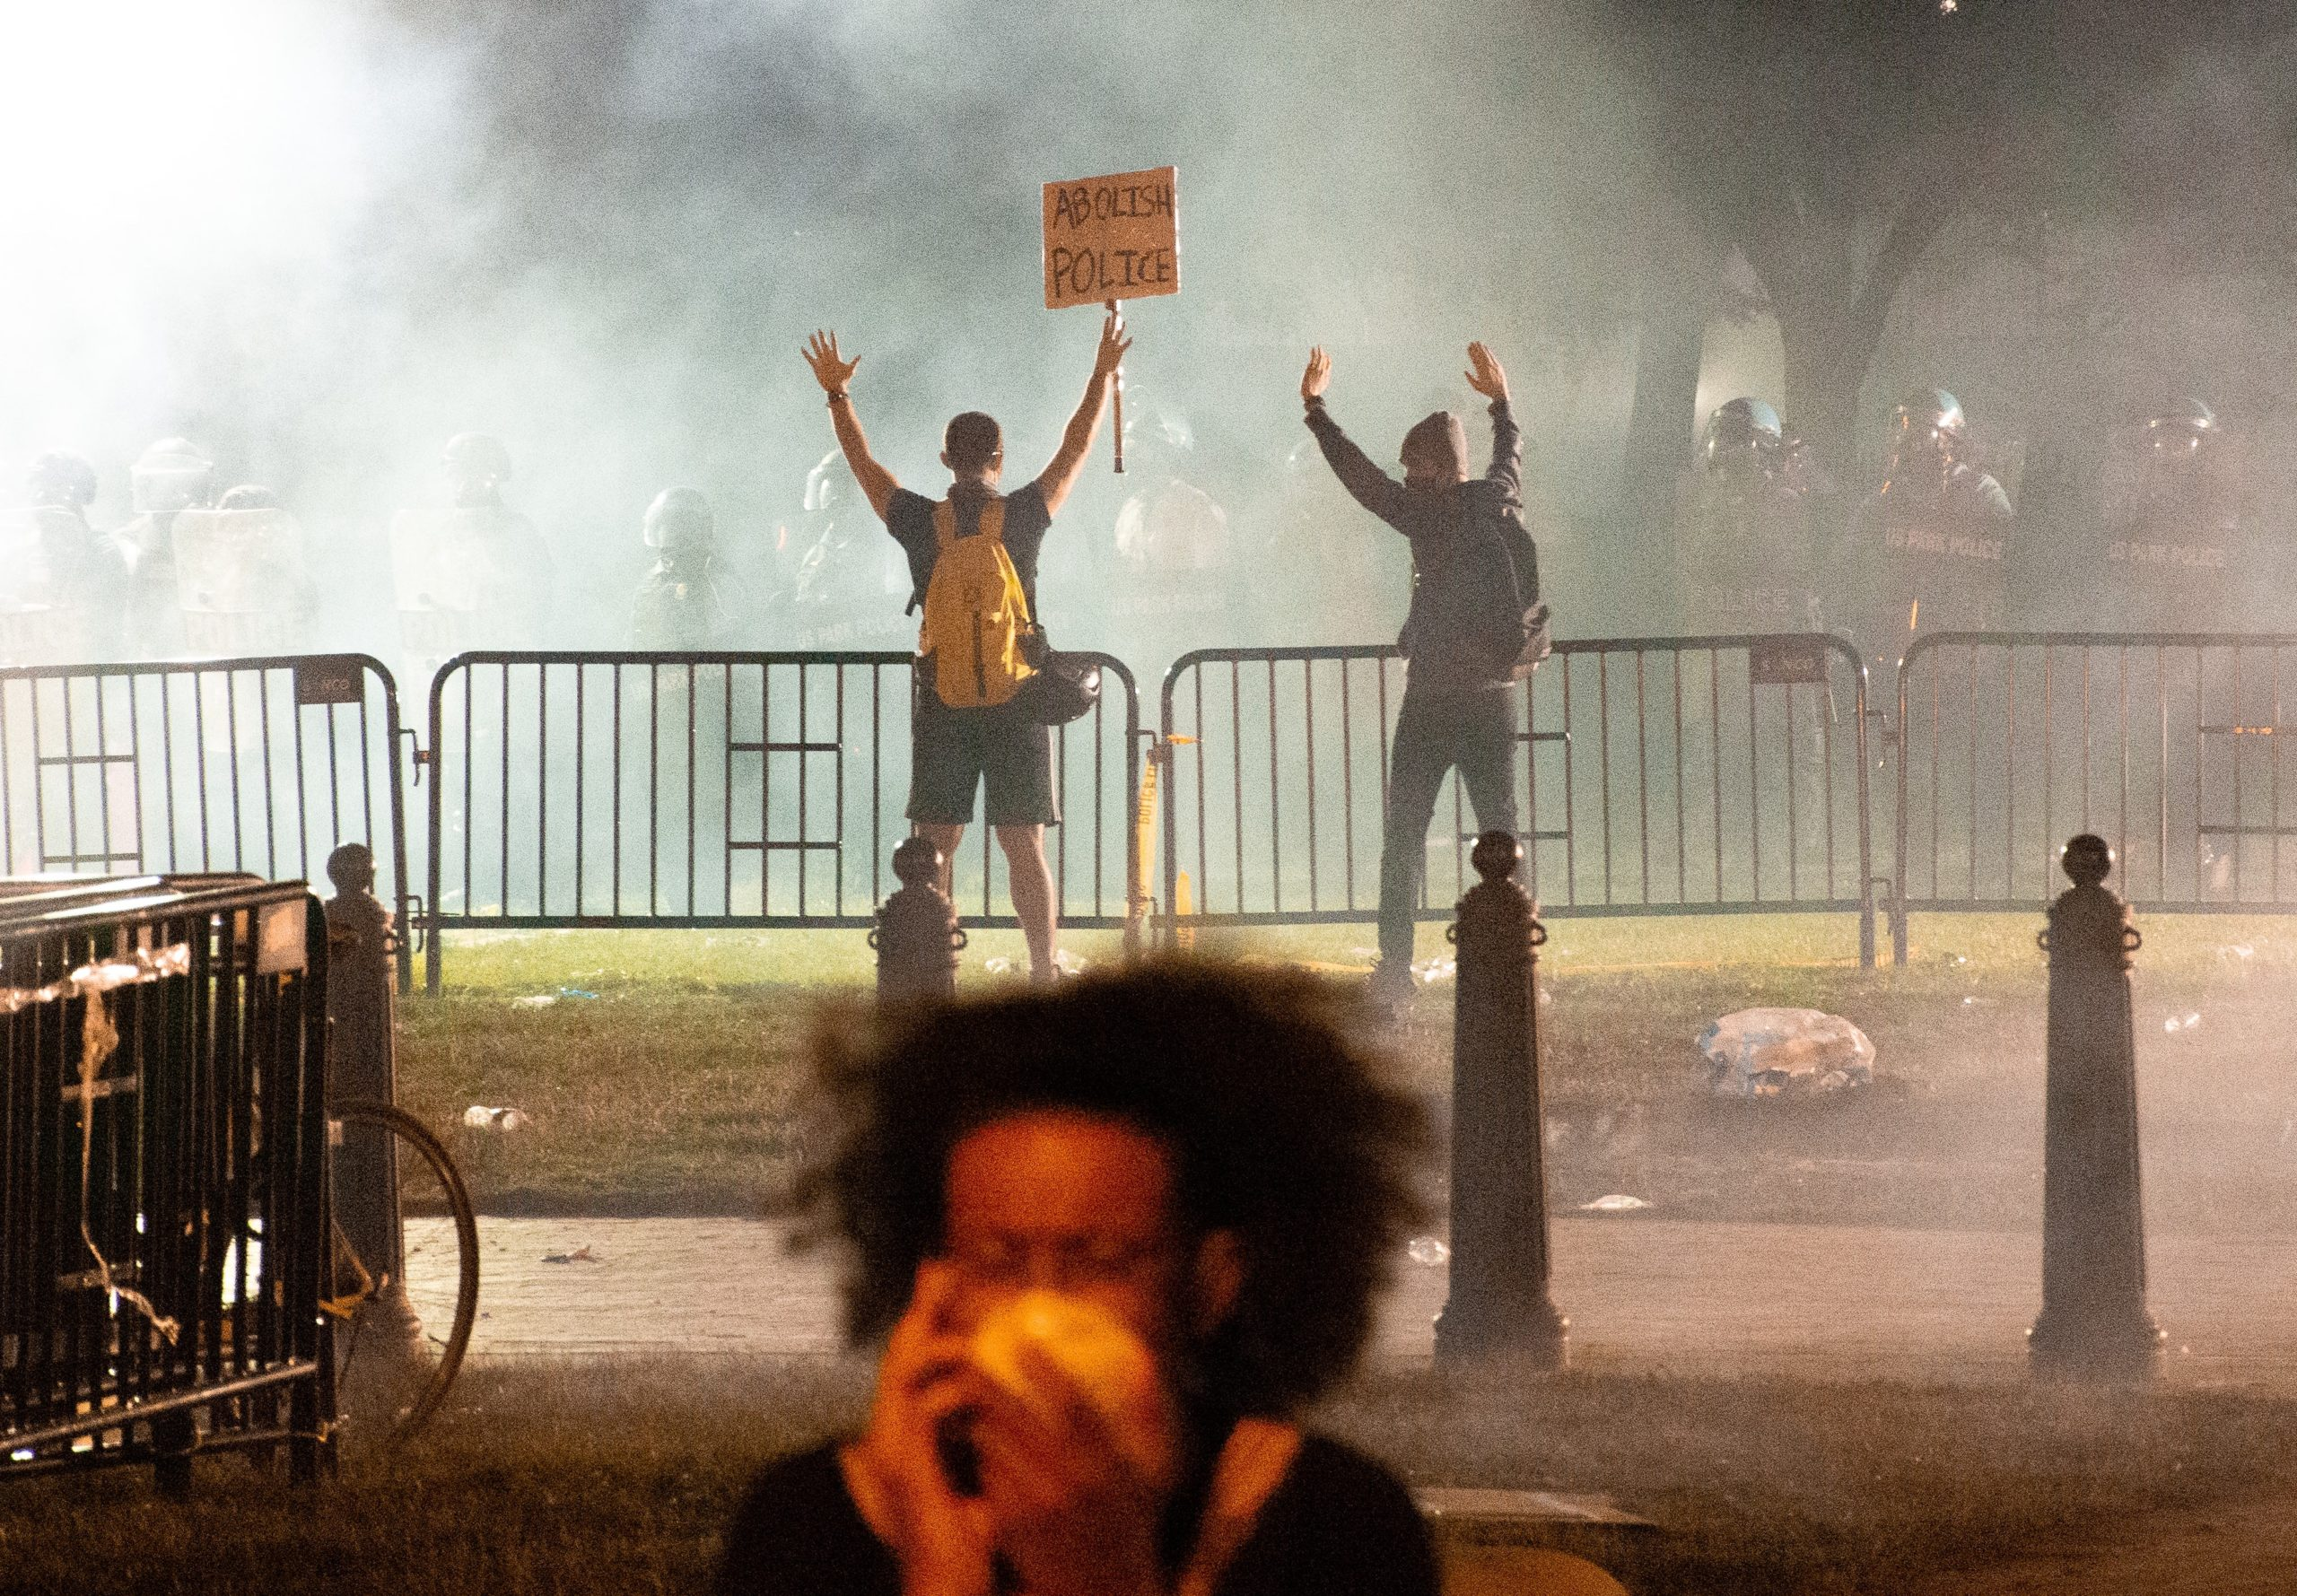 A chaotic protest scene cloudy with tear gas. In the foreground a woman wears a gas mask and looks distresed. In the background, two protesters confront a row of riot cops with an abolish police sign.